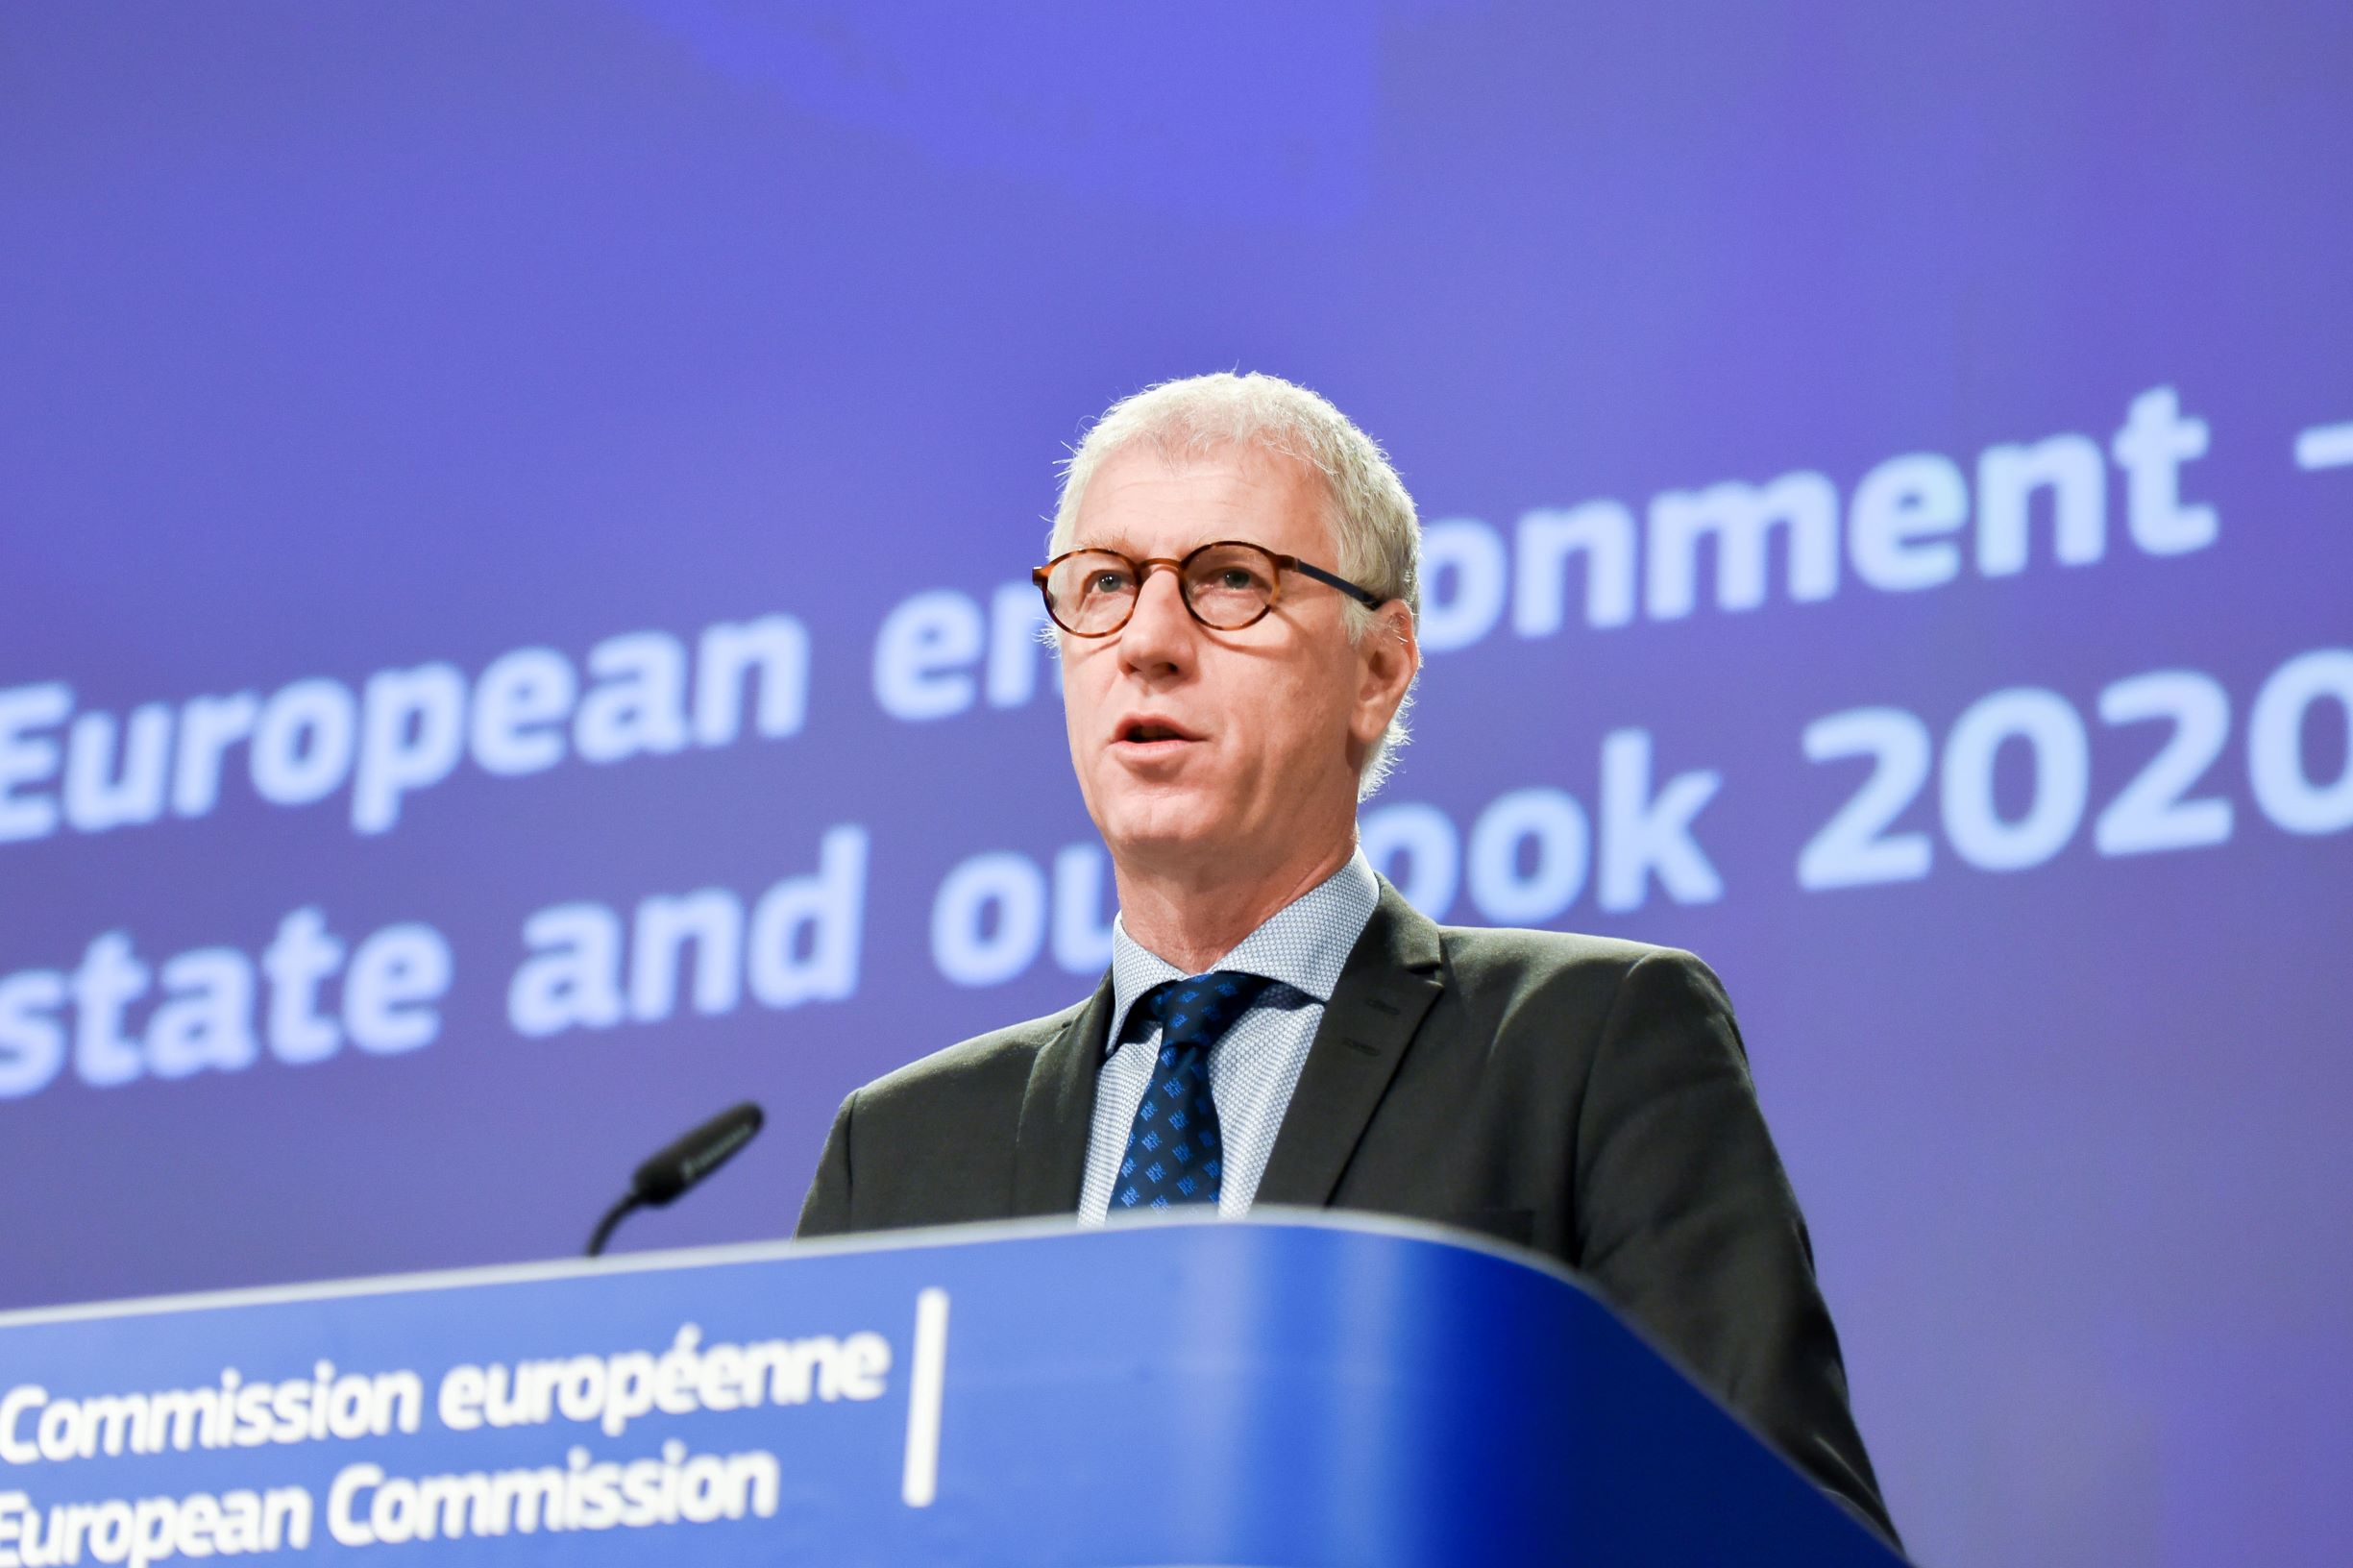 Interview: EEA head Hans Bruyninckx on the European Green Deal, the EU budget and eco-friendly 'creative destruction'